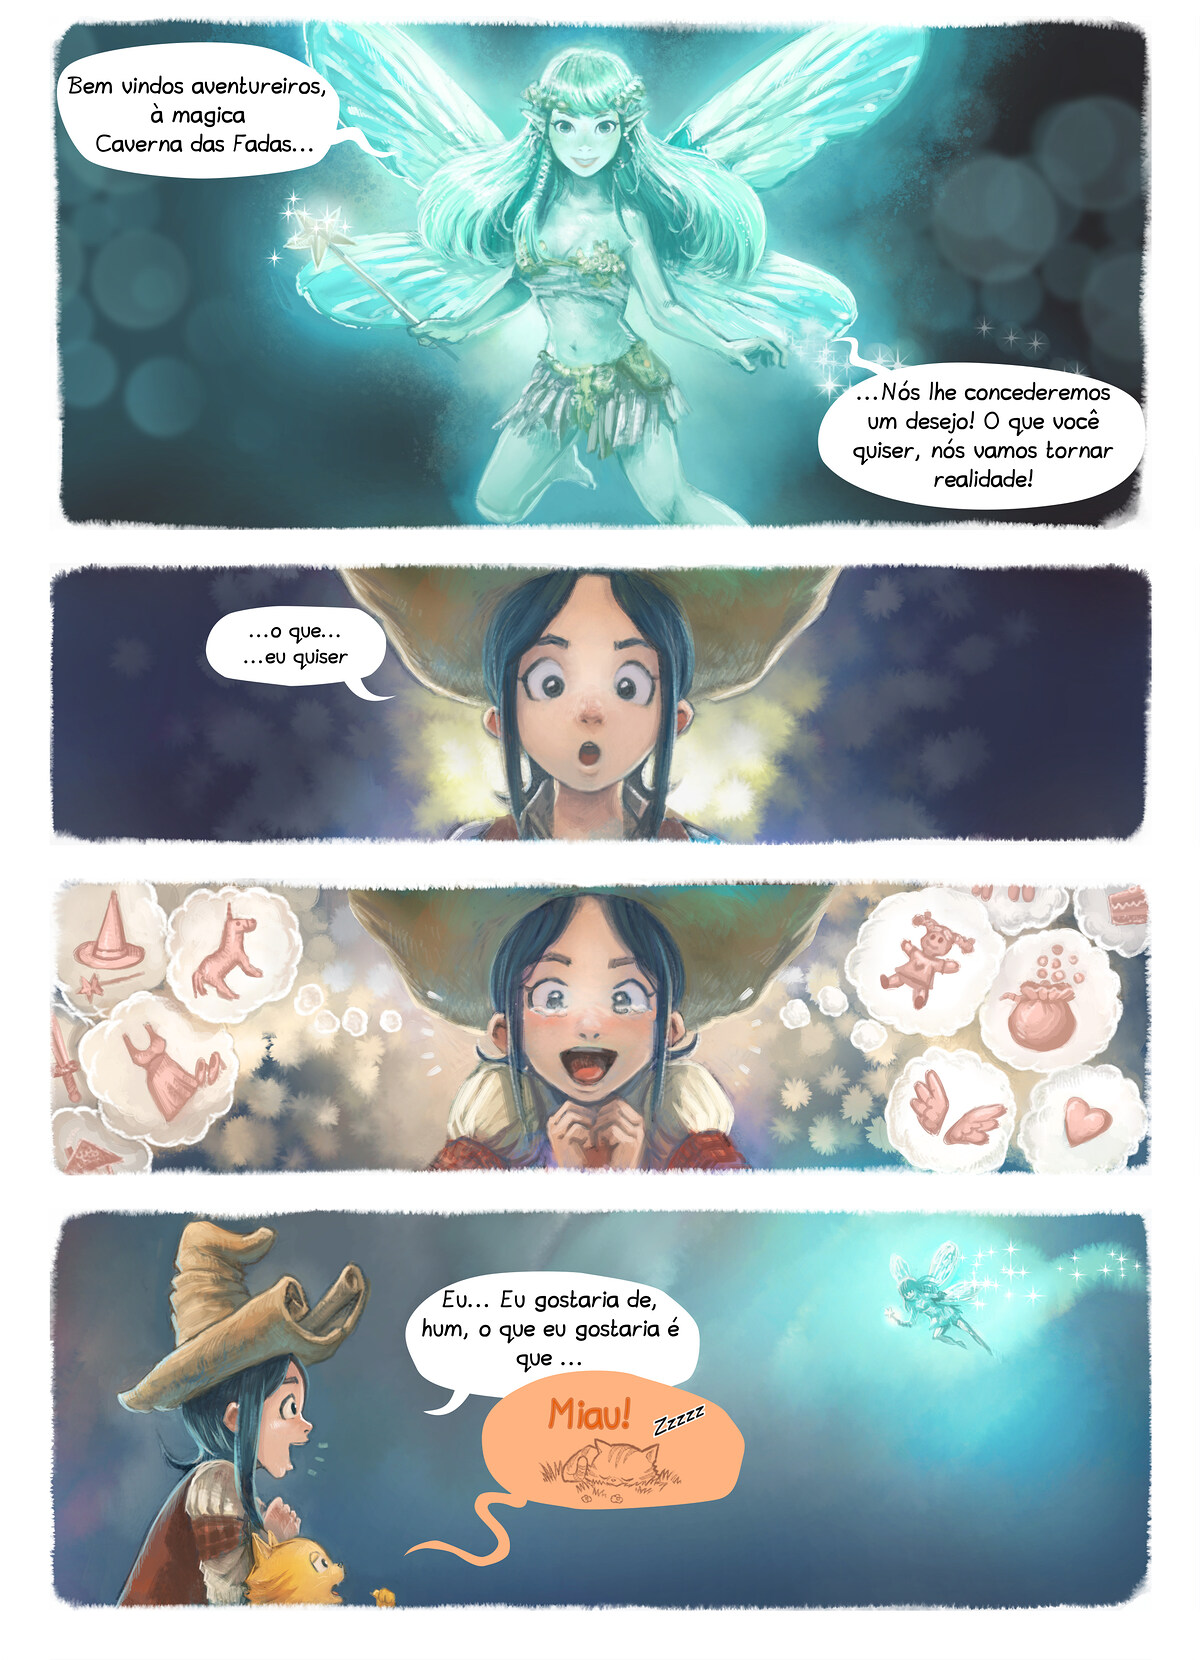 A webcomic page of Pepper&Carrot, episódio 7 [pt], página 4